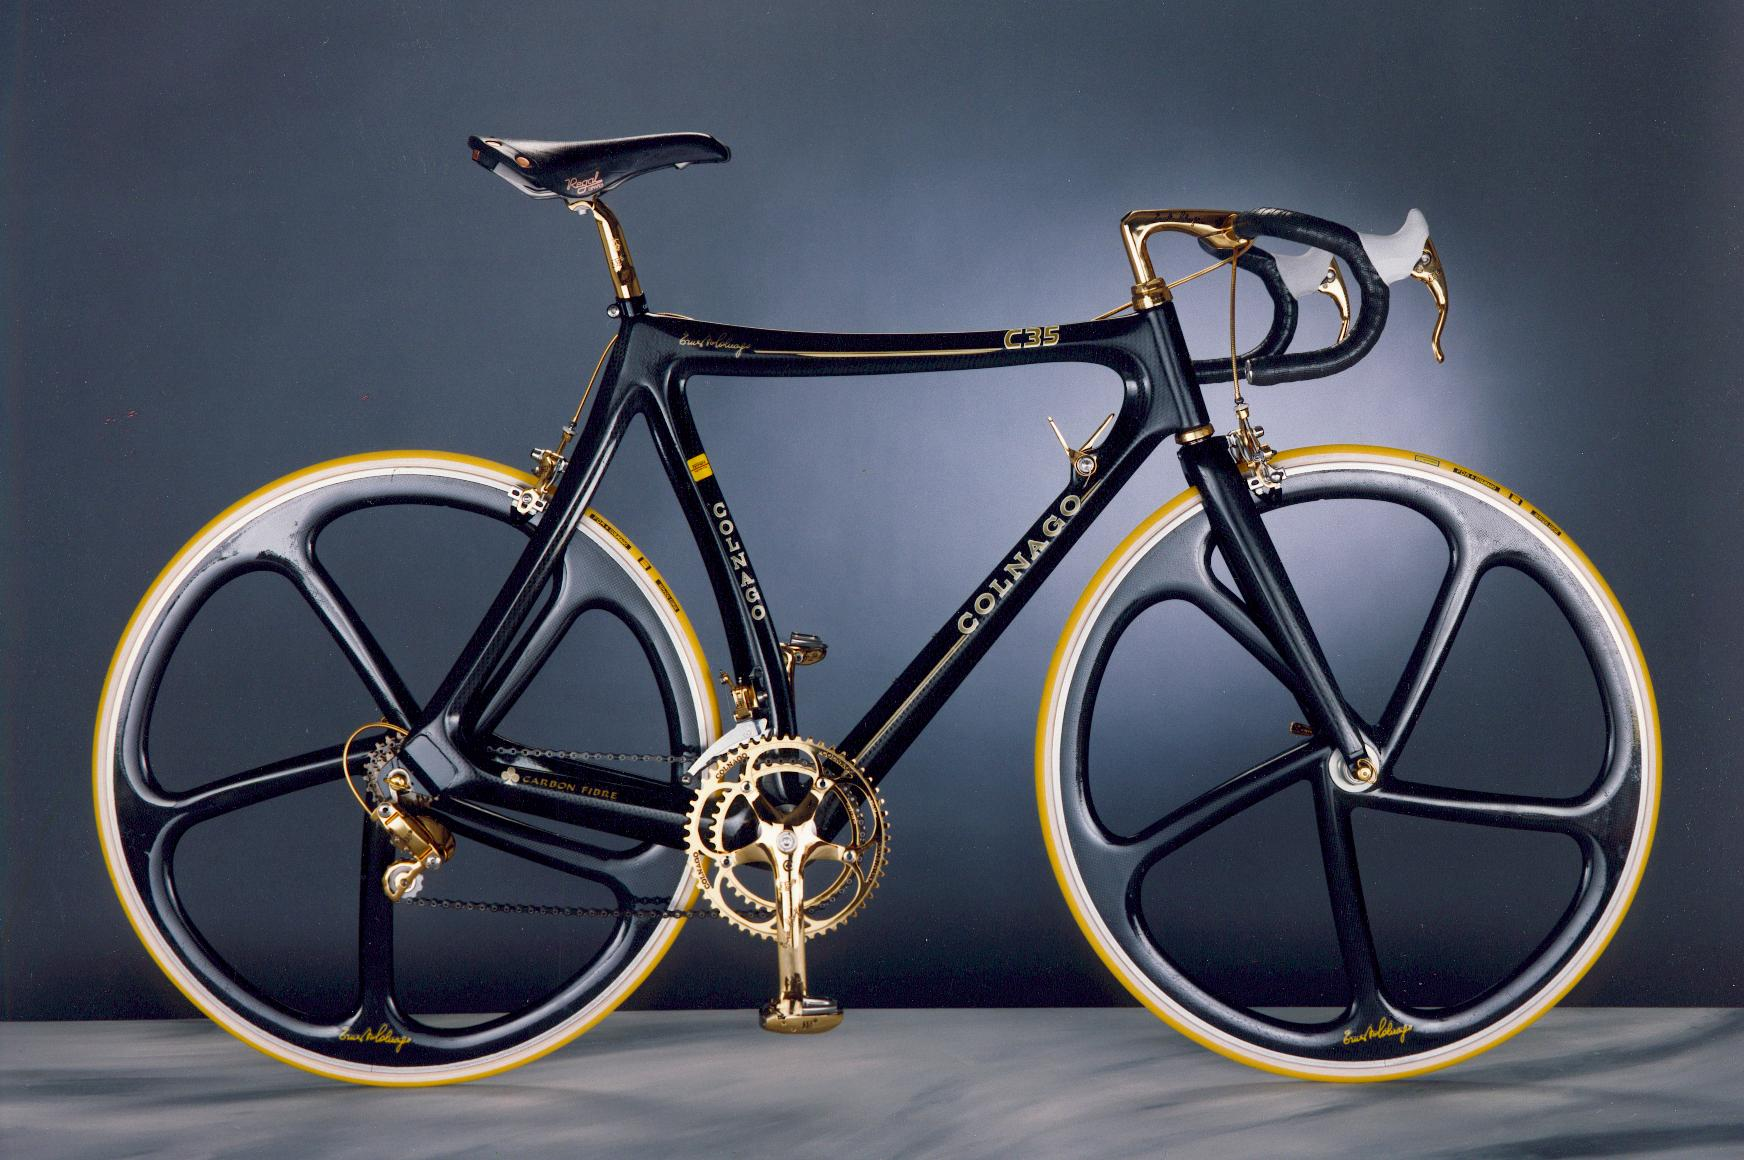 1989 Colnago C35 equipped with Campagnolo Super Record Gold